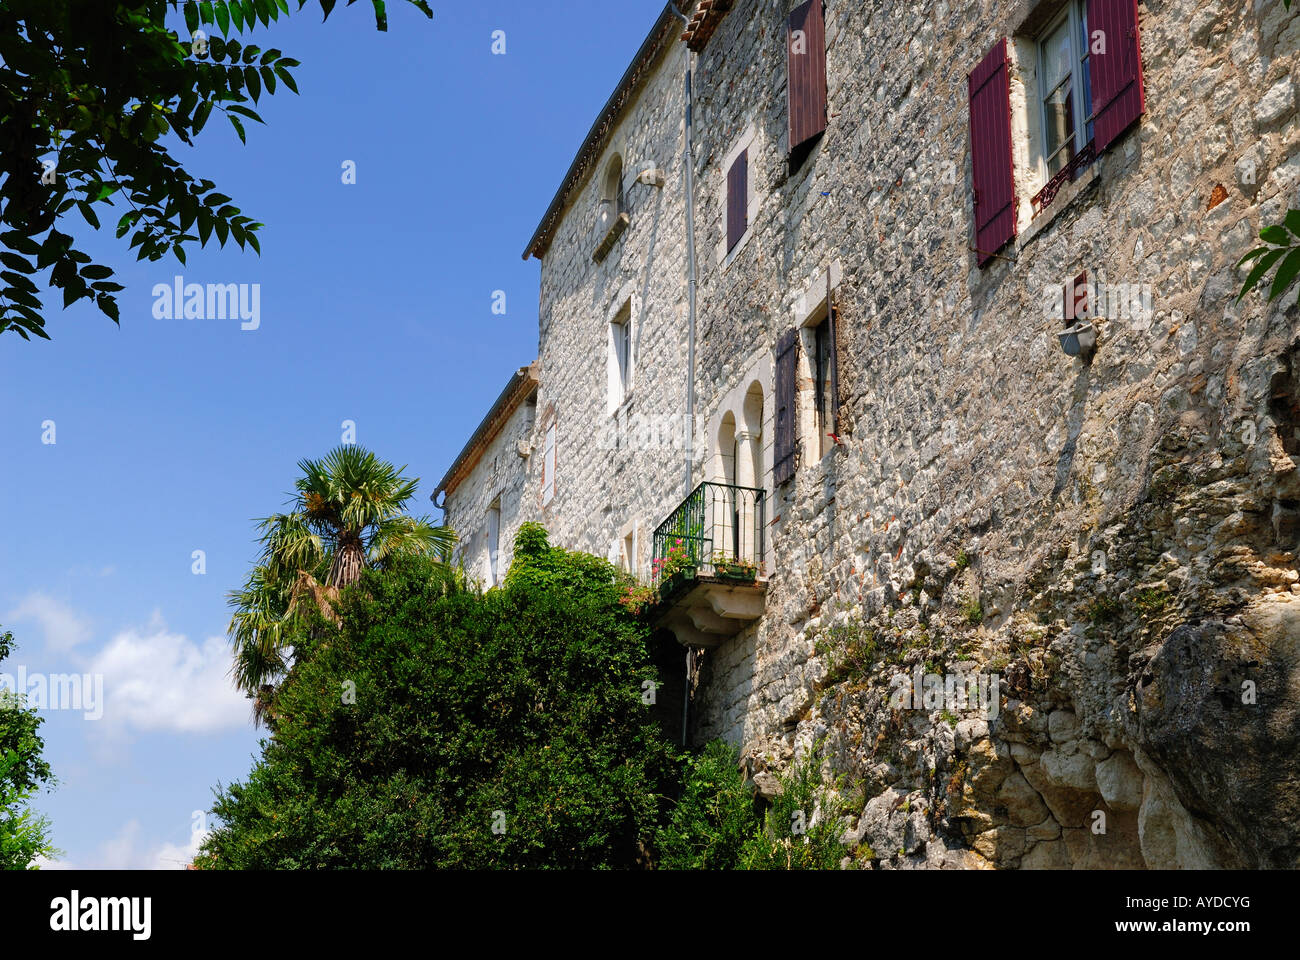 Outer wall of bastide village Tournon d'Agenais in the Lot-et-Garonne region, France Stock Photo